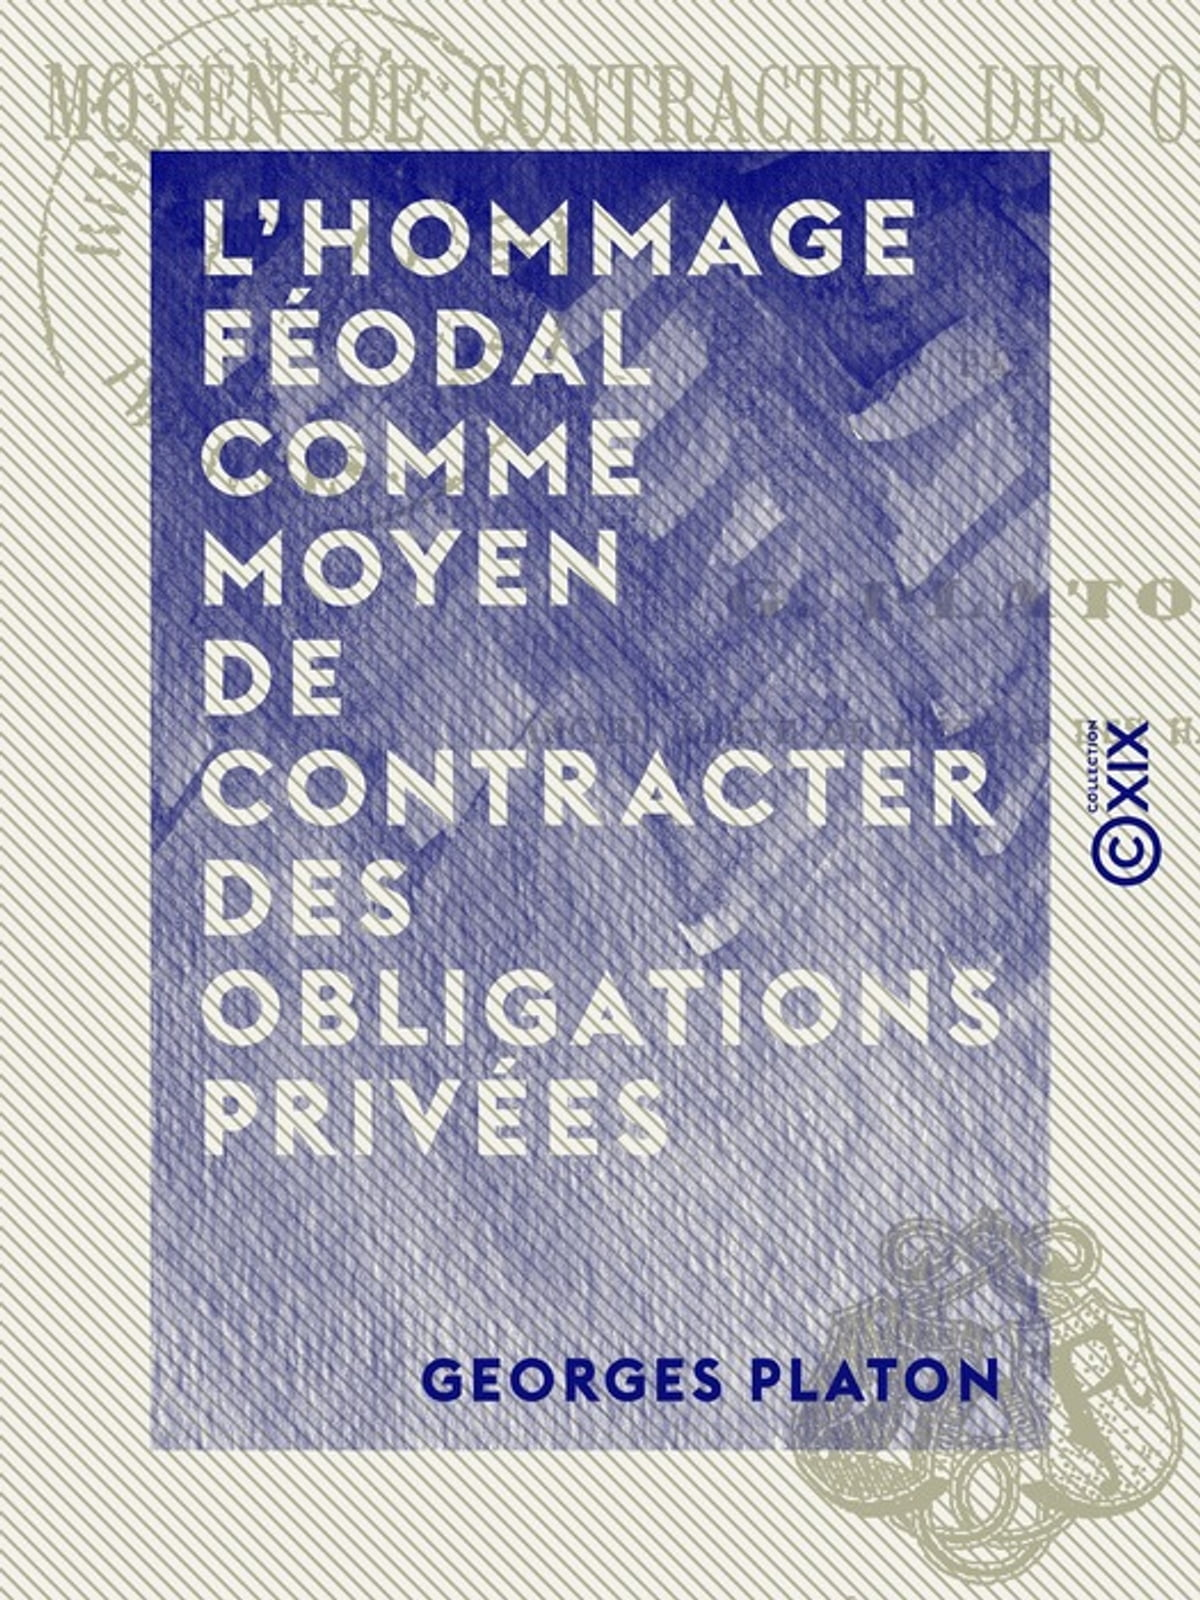 L Hommage Feodal Comme Moyen De Contracter Des Obligations Privees Ebook By Georges Platon 9782346103775 Rakuten Kobo United States